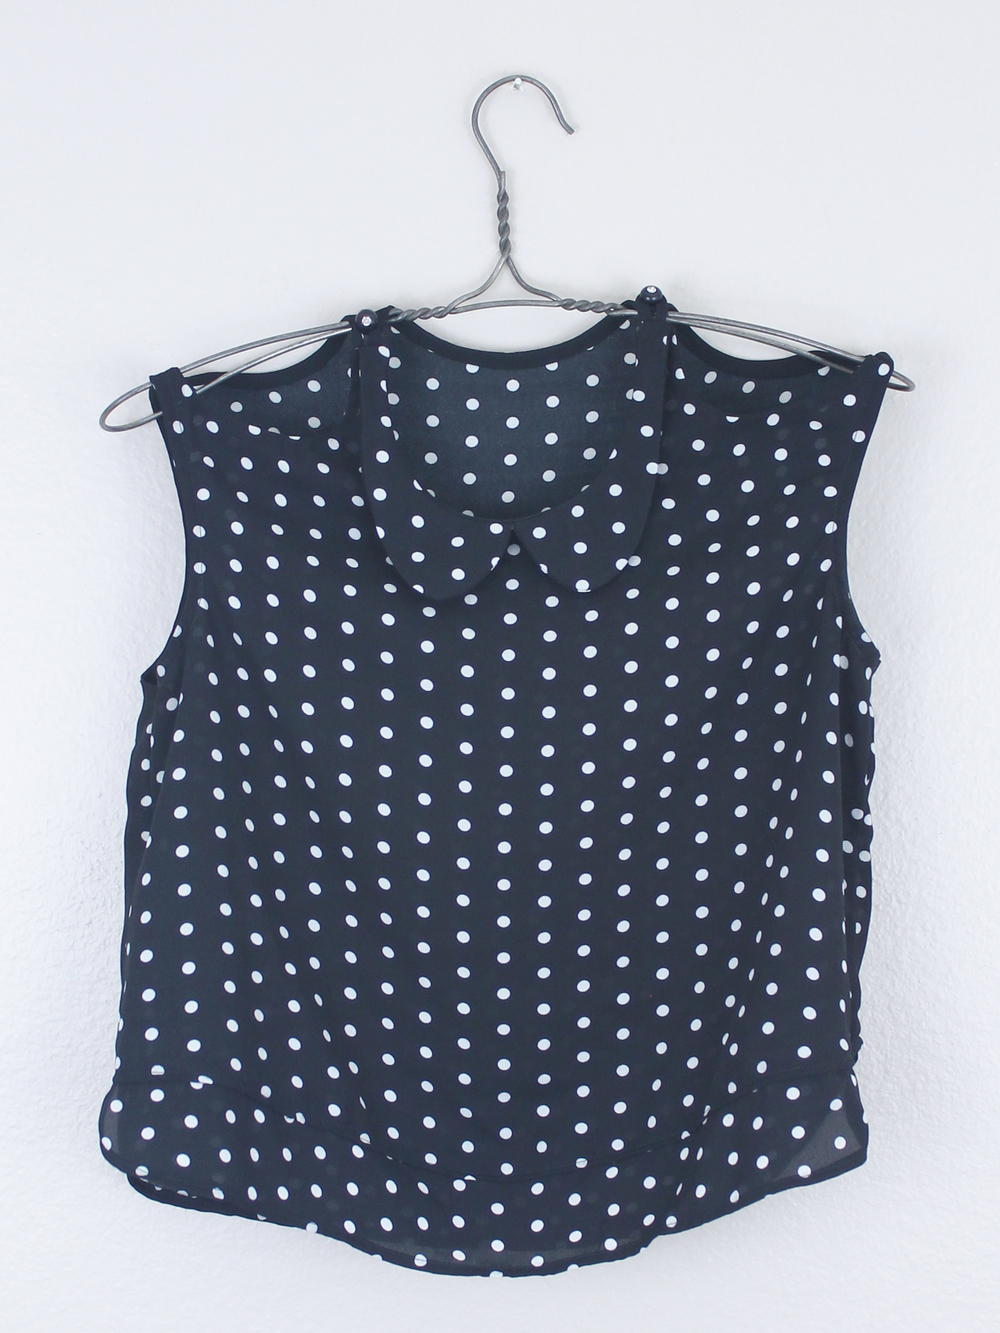 DIY Polka Dot Peplum Top – Sew DIY